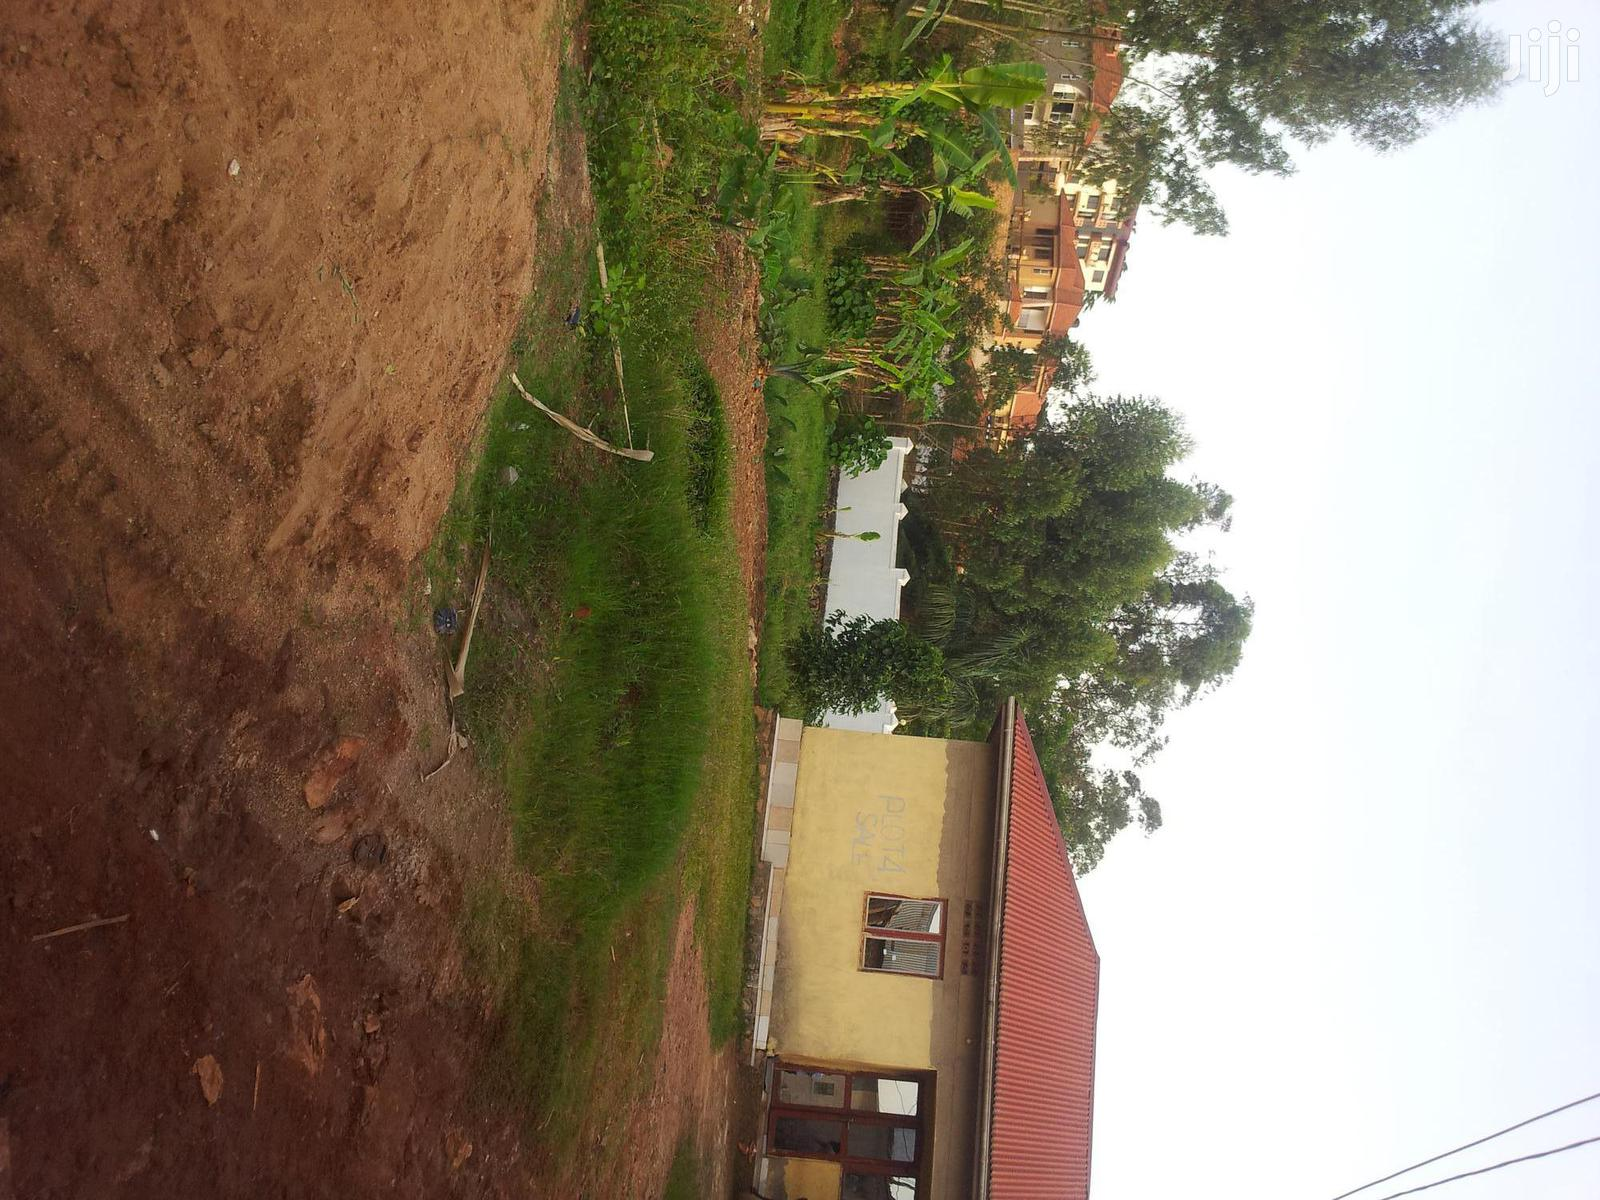 Komamboga Plot for Sale With House | Land & Plots For Sale for sale in Kampala, Central Region, Uganda